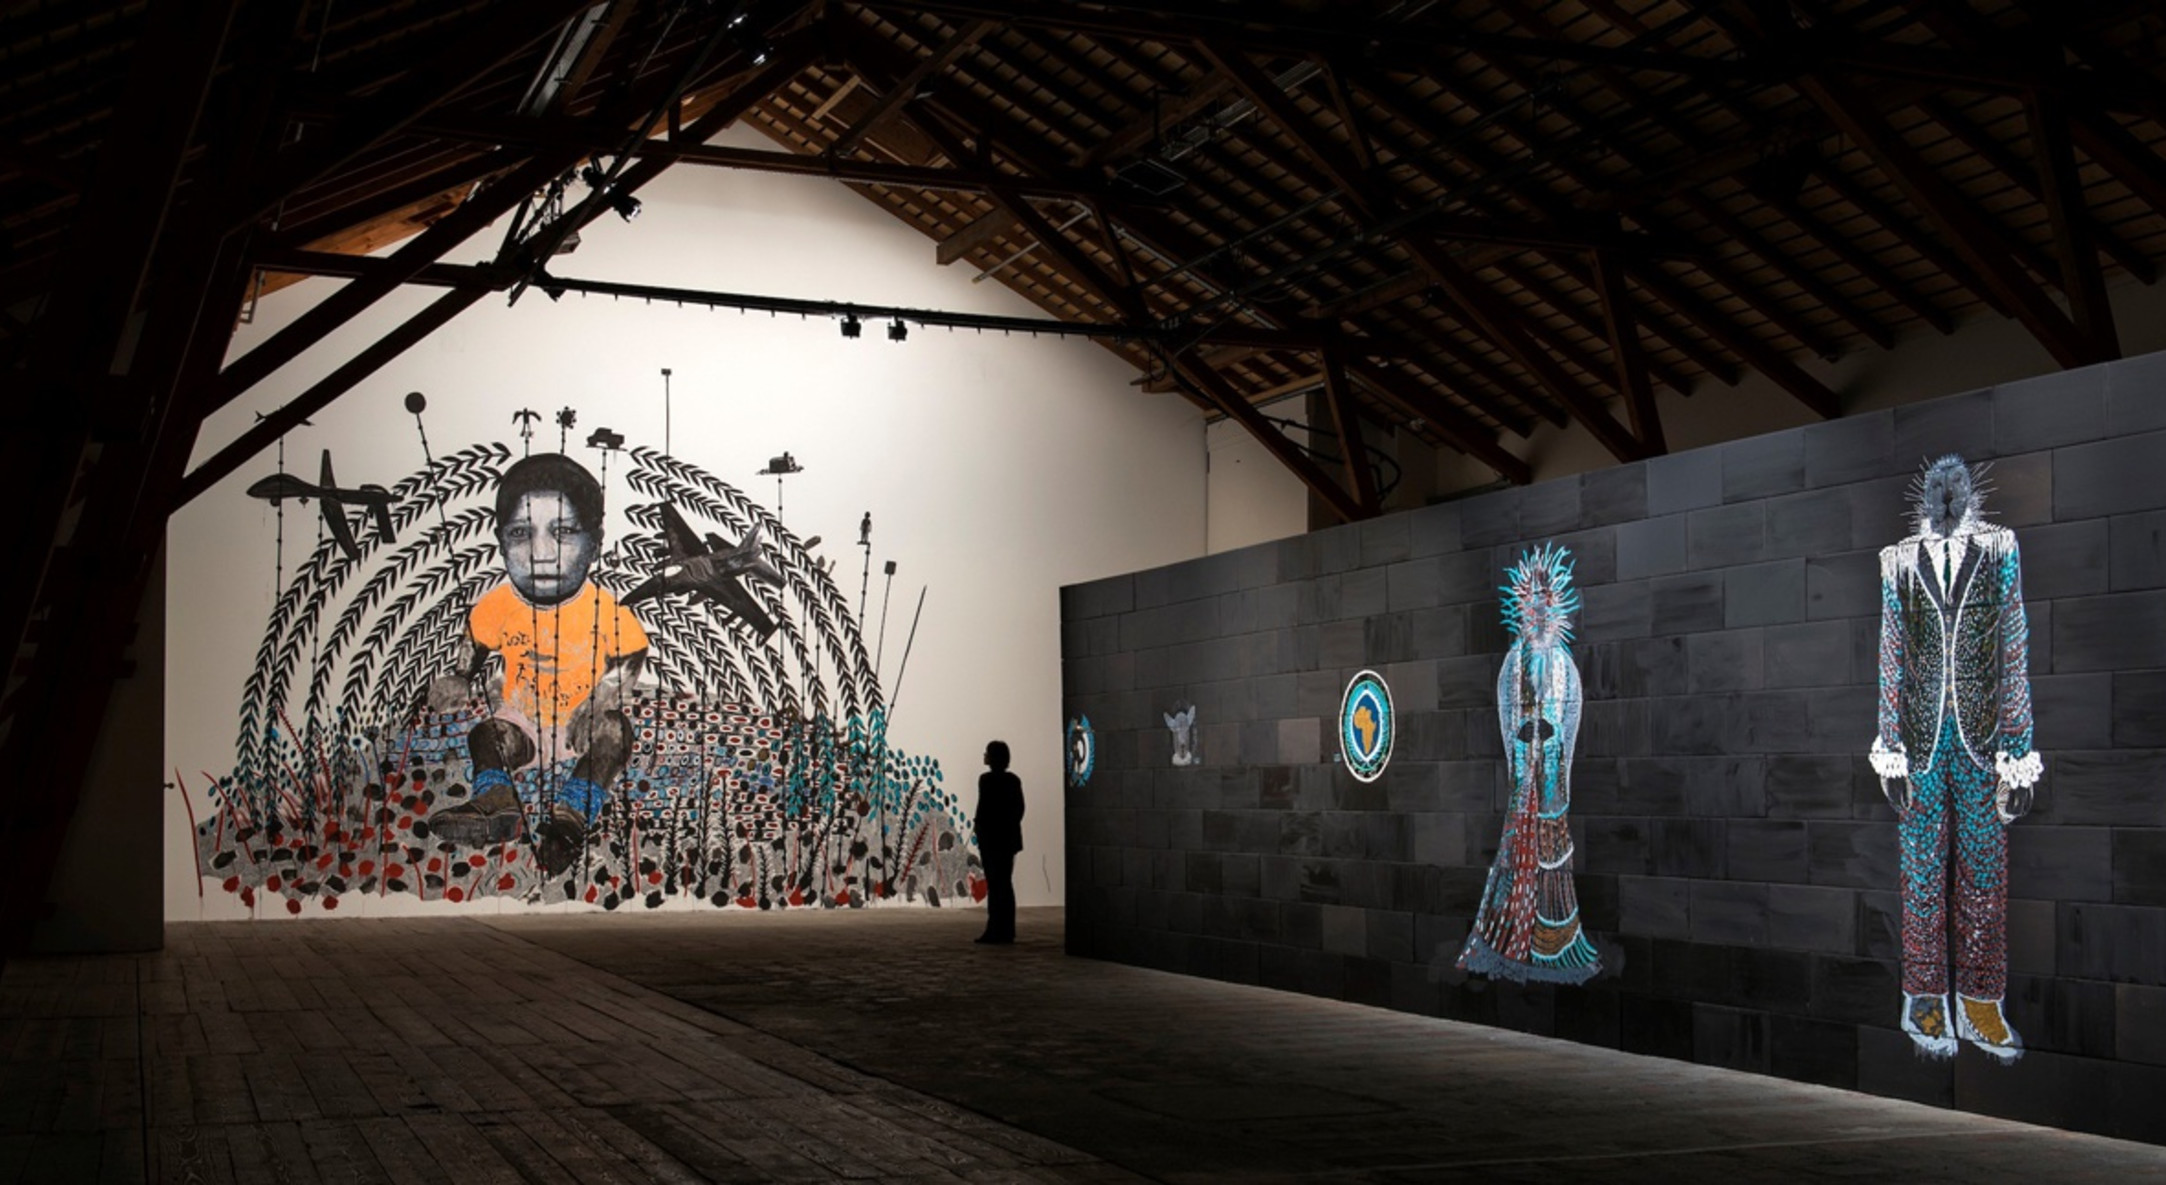 Installation view of Omar Ba, Dead Time 1 at the Ferme-Asile in Sion